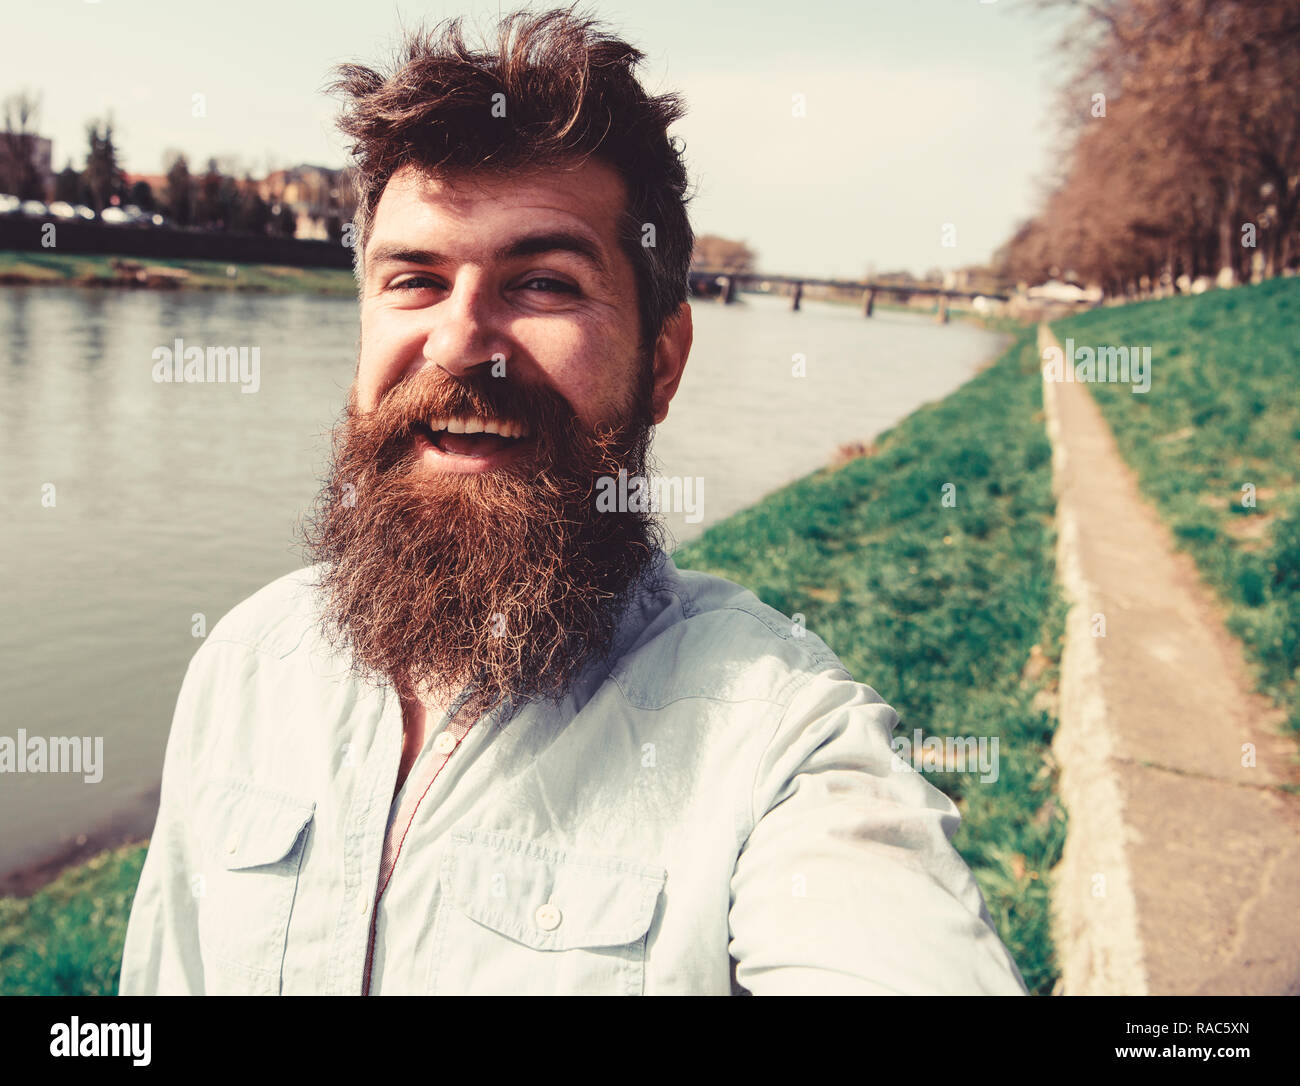 Man, tourist with beard and mustache on cheerful, smiling face, riverside background. Selfie photo concept. Hipster, tourist with tousled hair and long beard looking at camera, taking selfie photo. - Stock Image